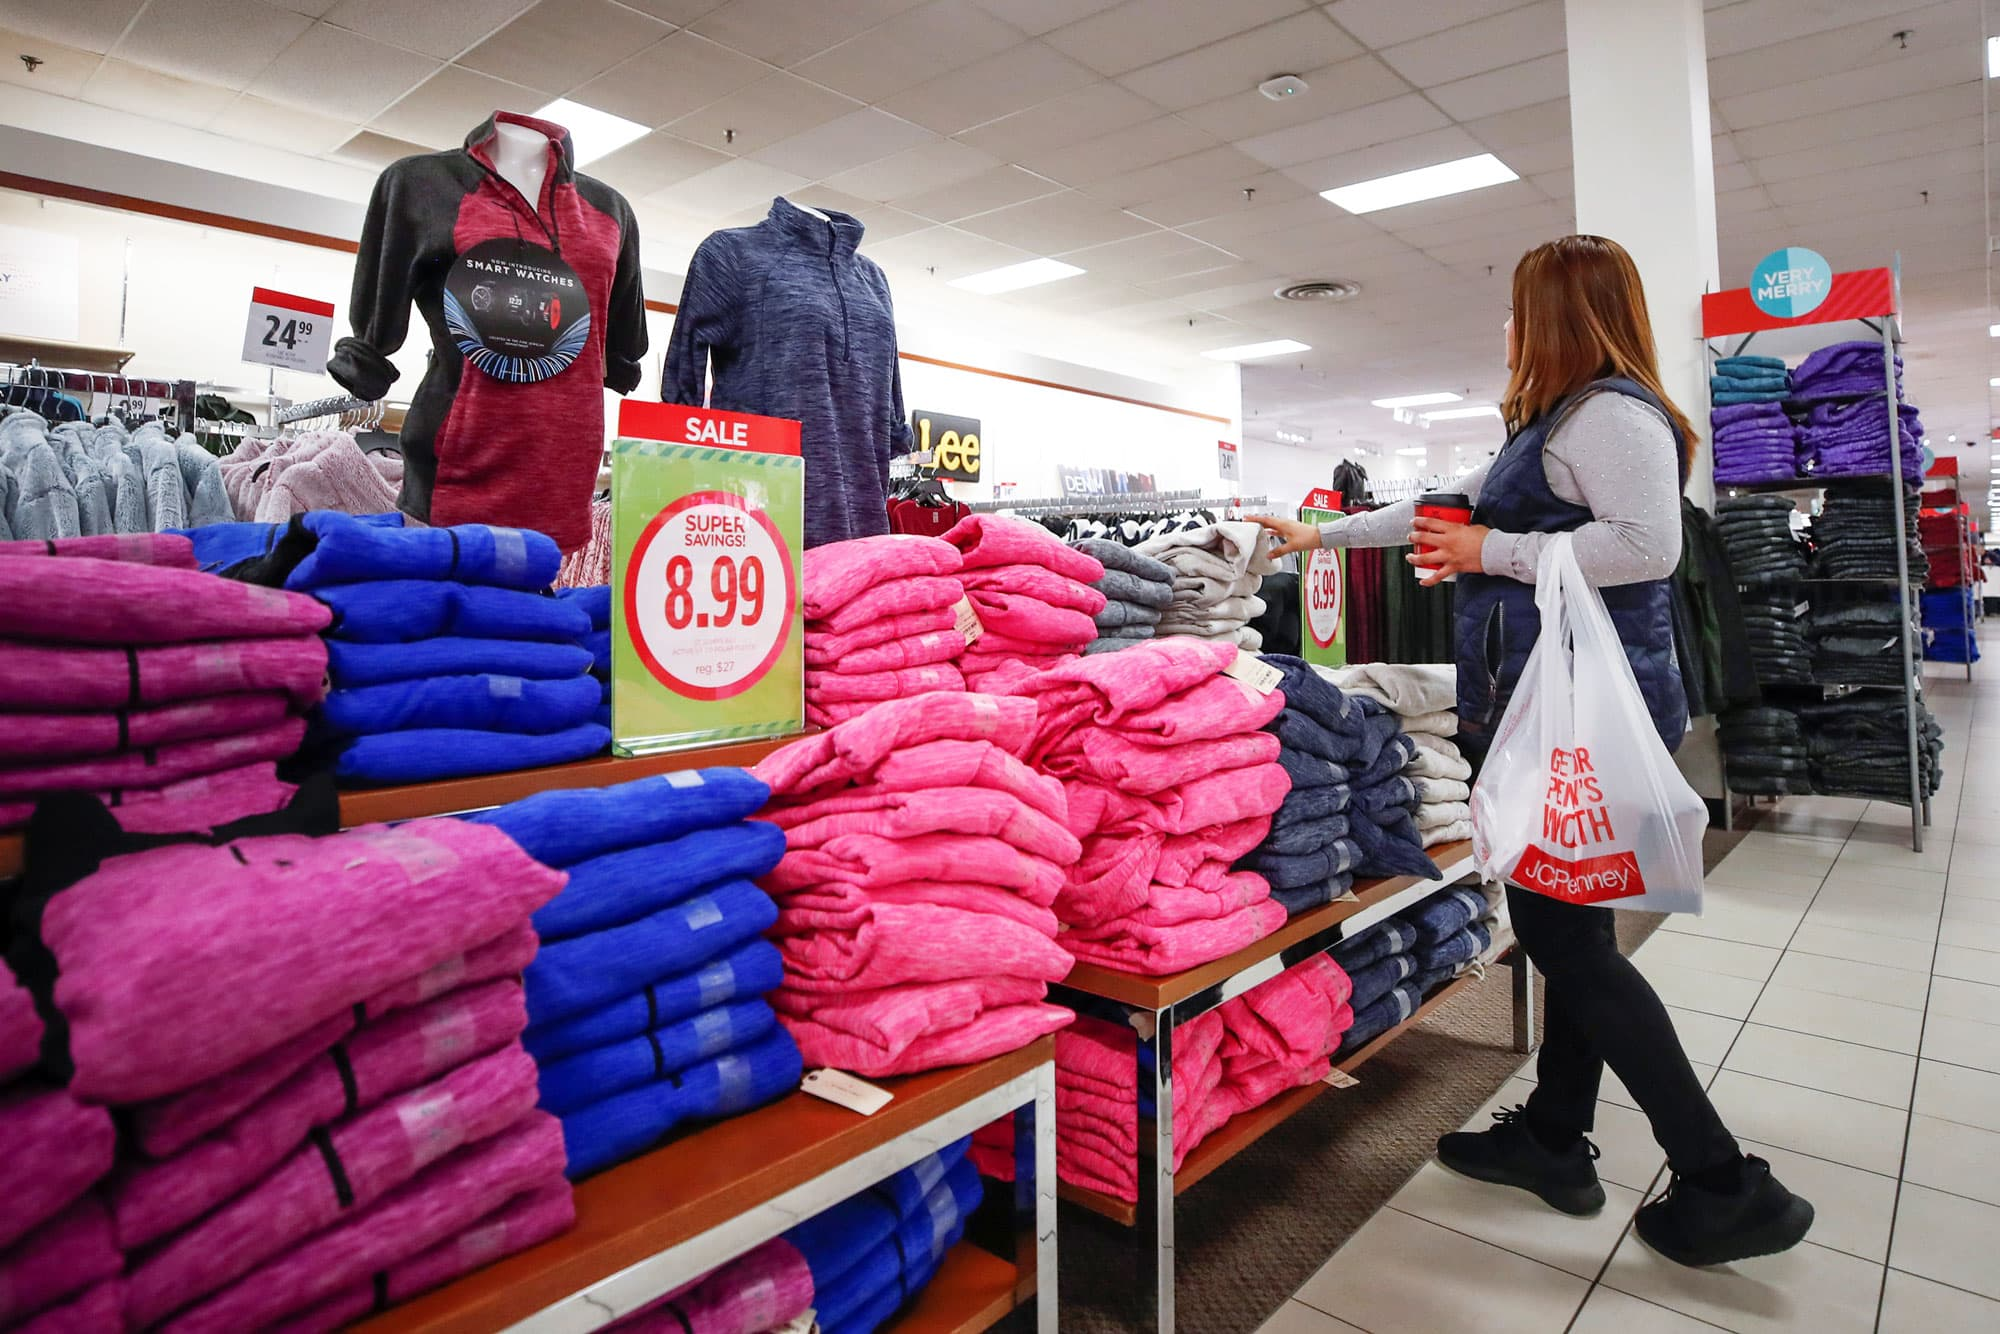 JC Penney prepping for debt talks ahead of the holiday season, Bloomberg says